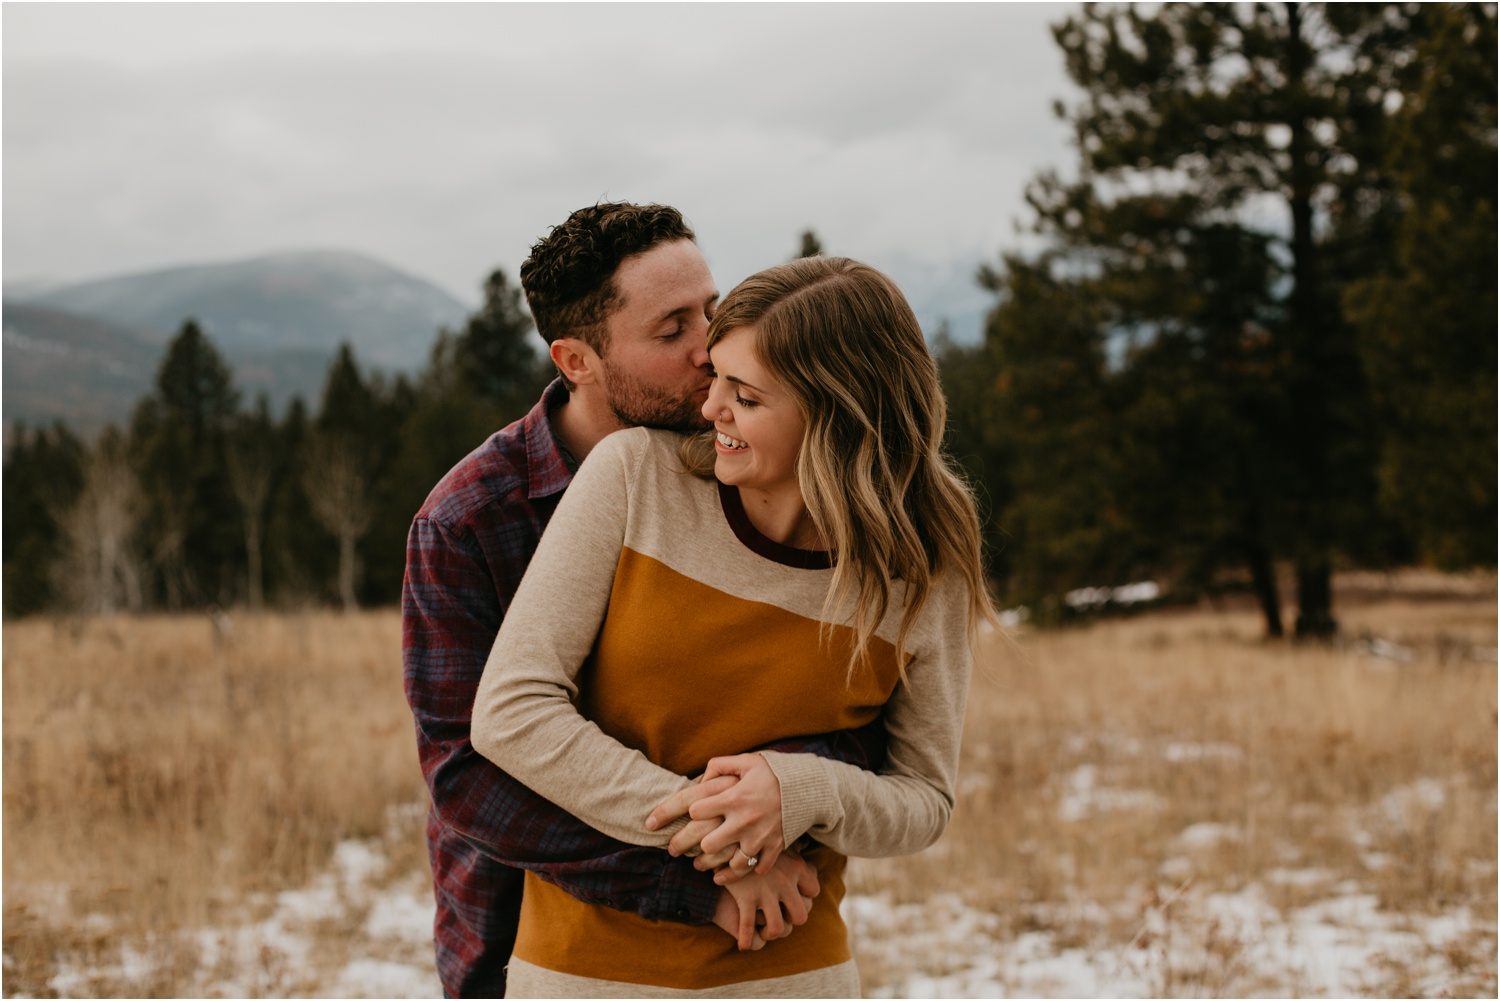 Butte Engagement,Cranbrook engagement photographer,Kimberley bc photographer,Kimberley wedding,east kootenay photographer,kimberley engagement,marysville engagement,marysville wedding,saskatchewan wedding photography,st eugene wedding,st marys lake engagement,yxc engagement,